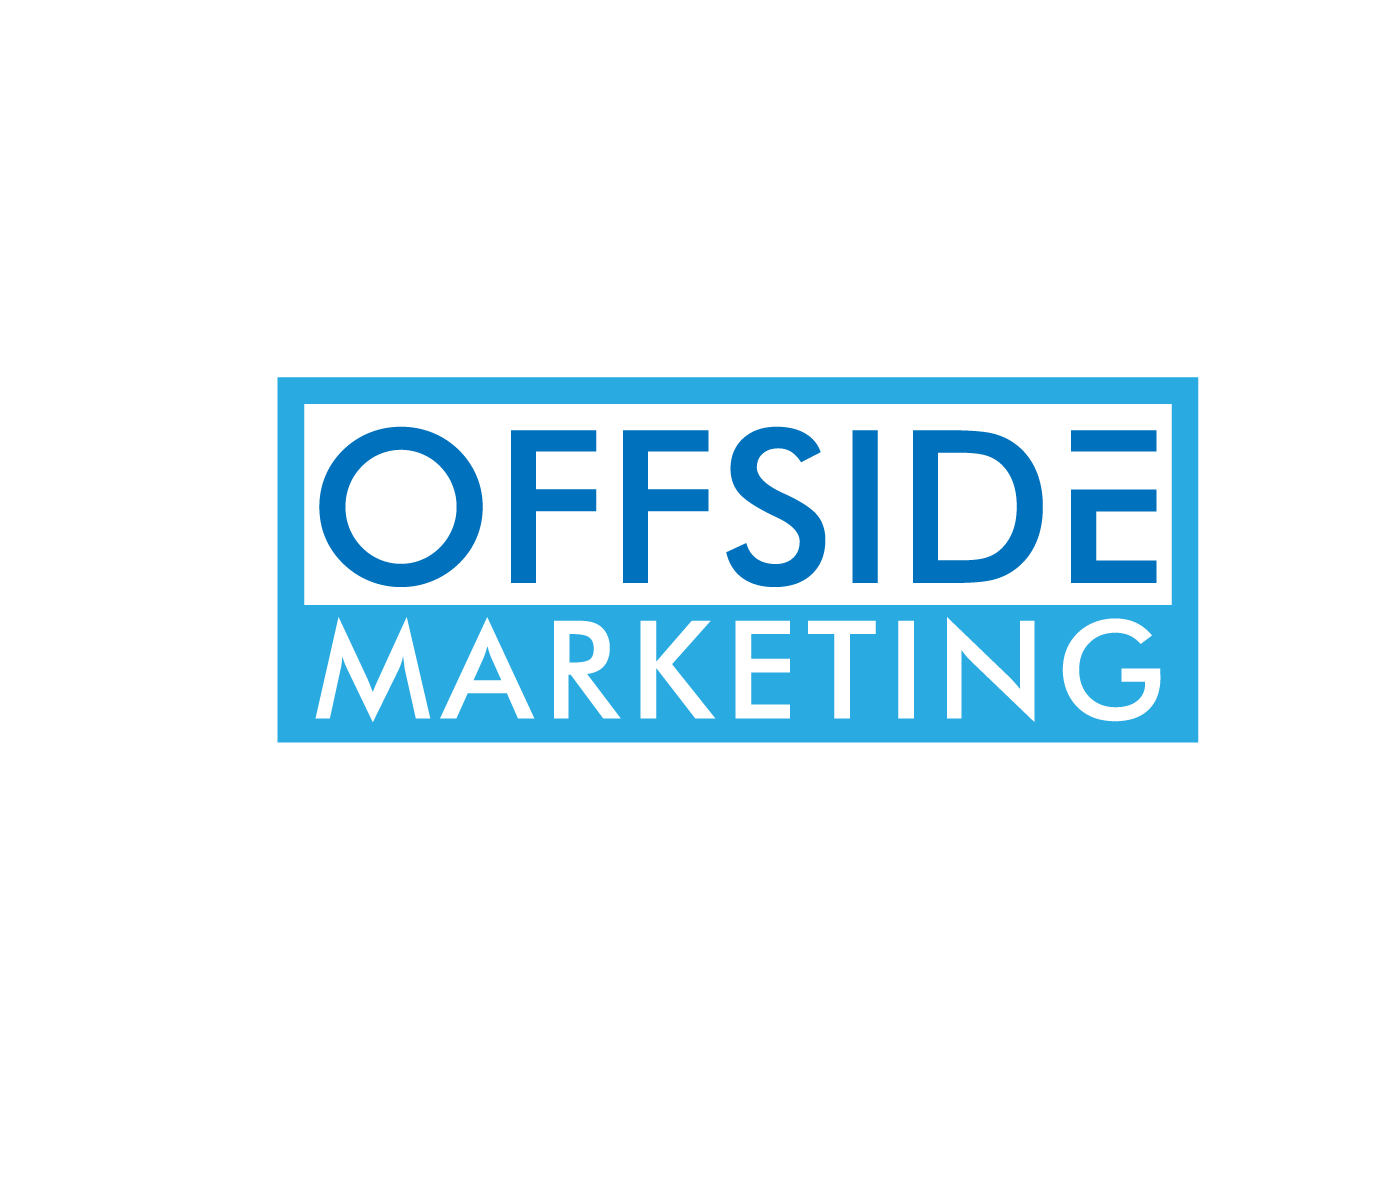 Offside Marketing